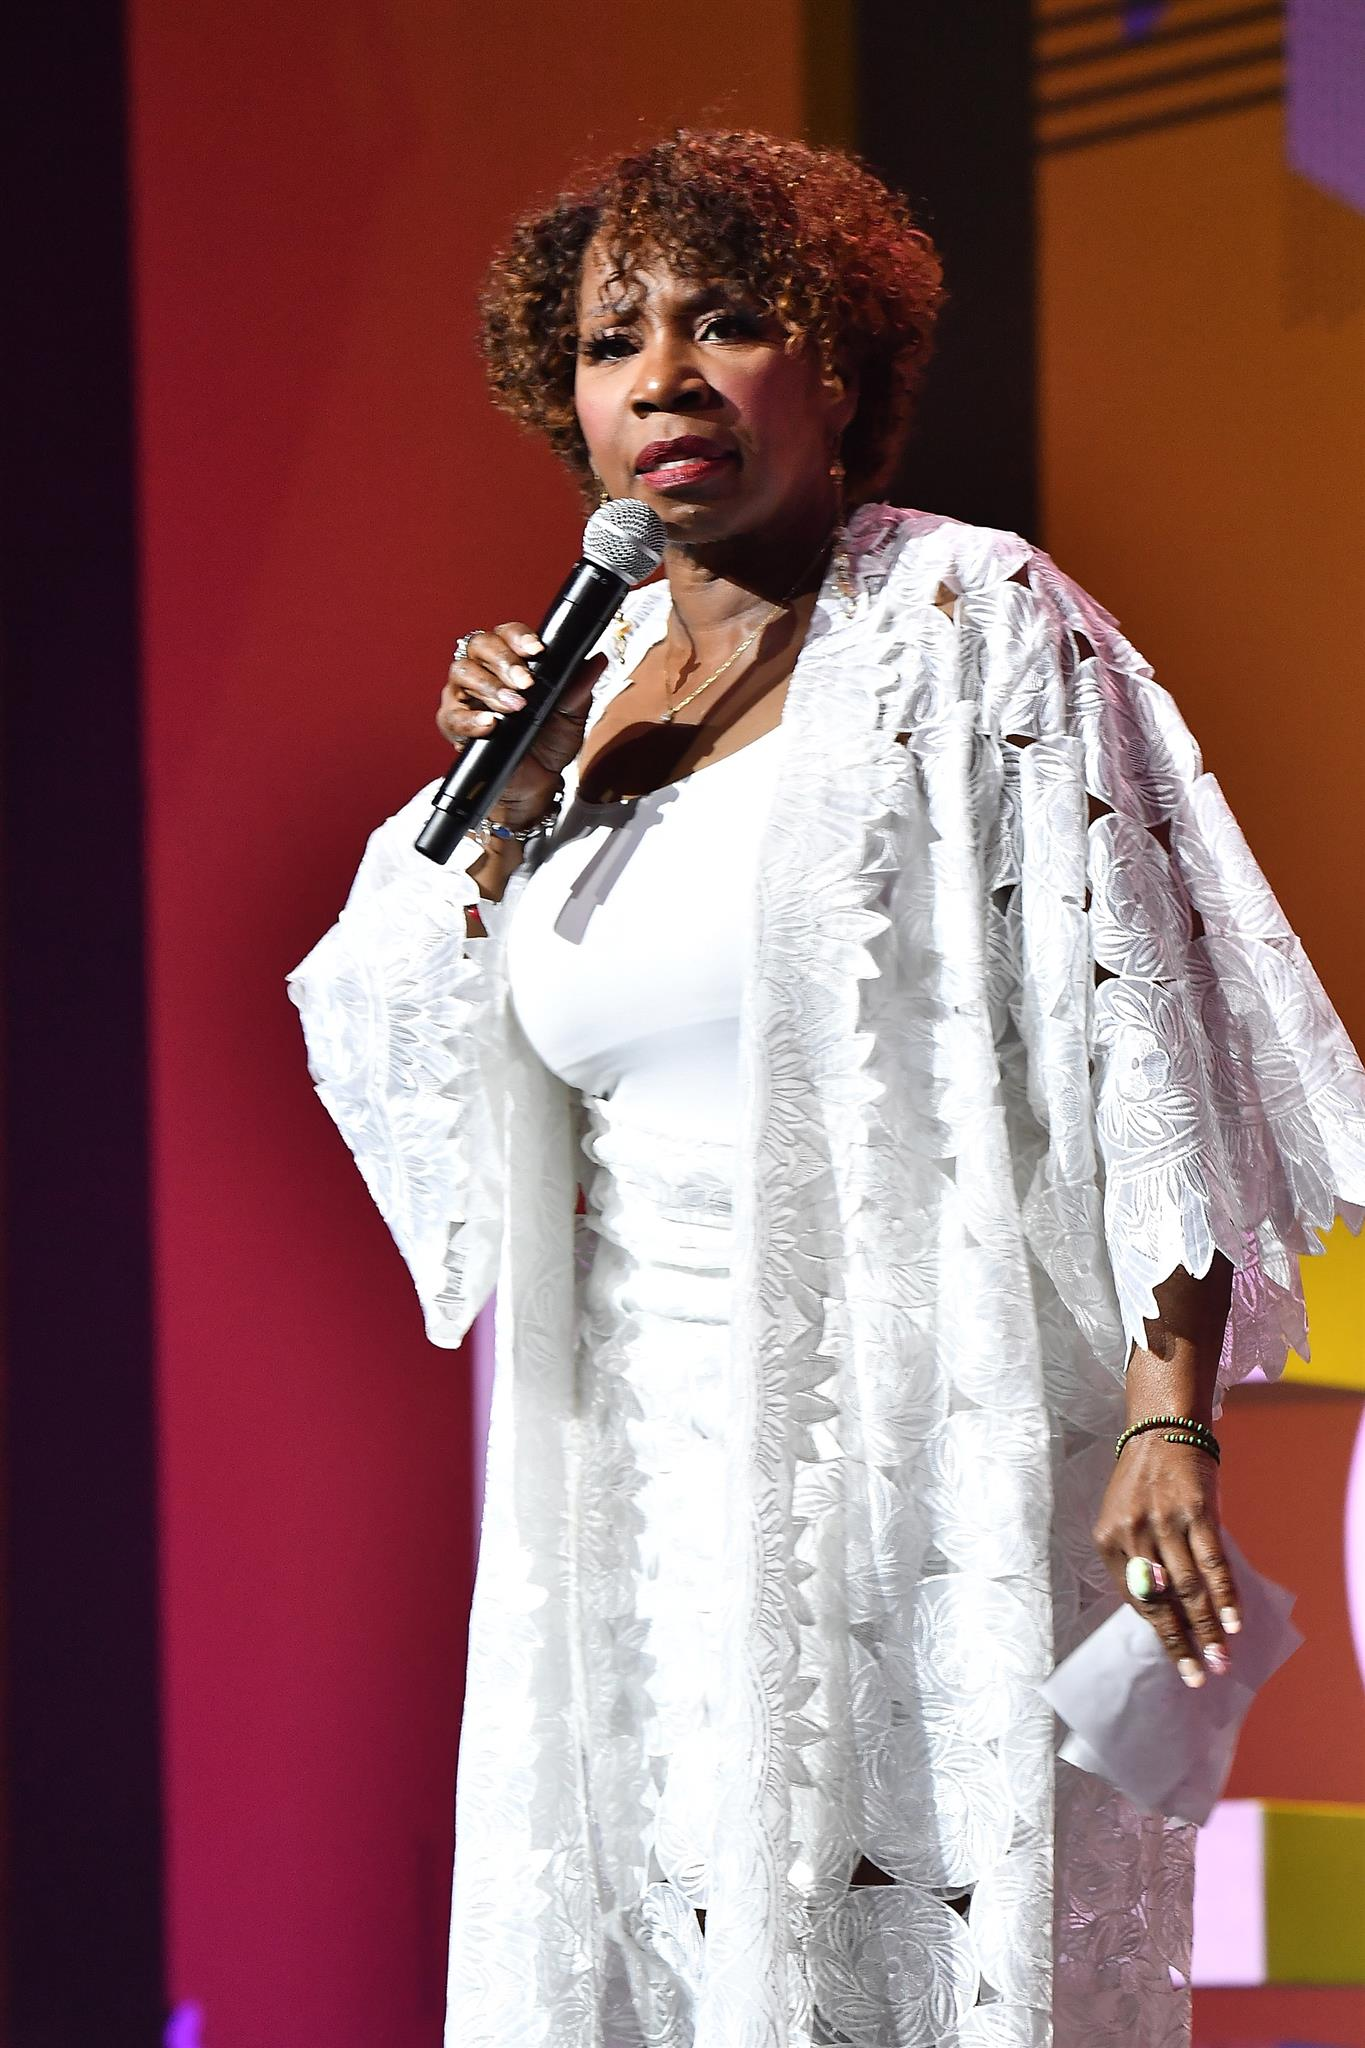 Iyanla Vanzant speaks onstage during the 2018 Essence Festival. | Photo: GettyImages/Global Images of Ukraine